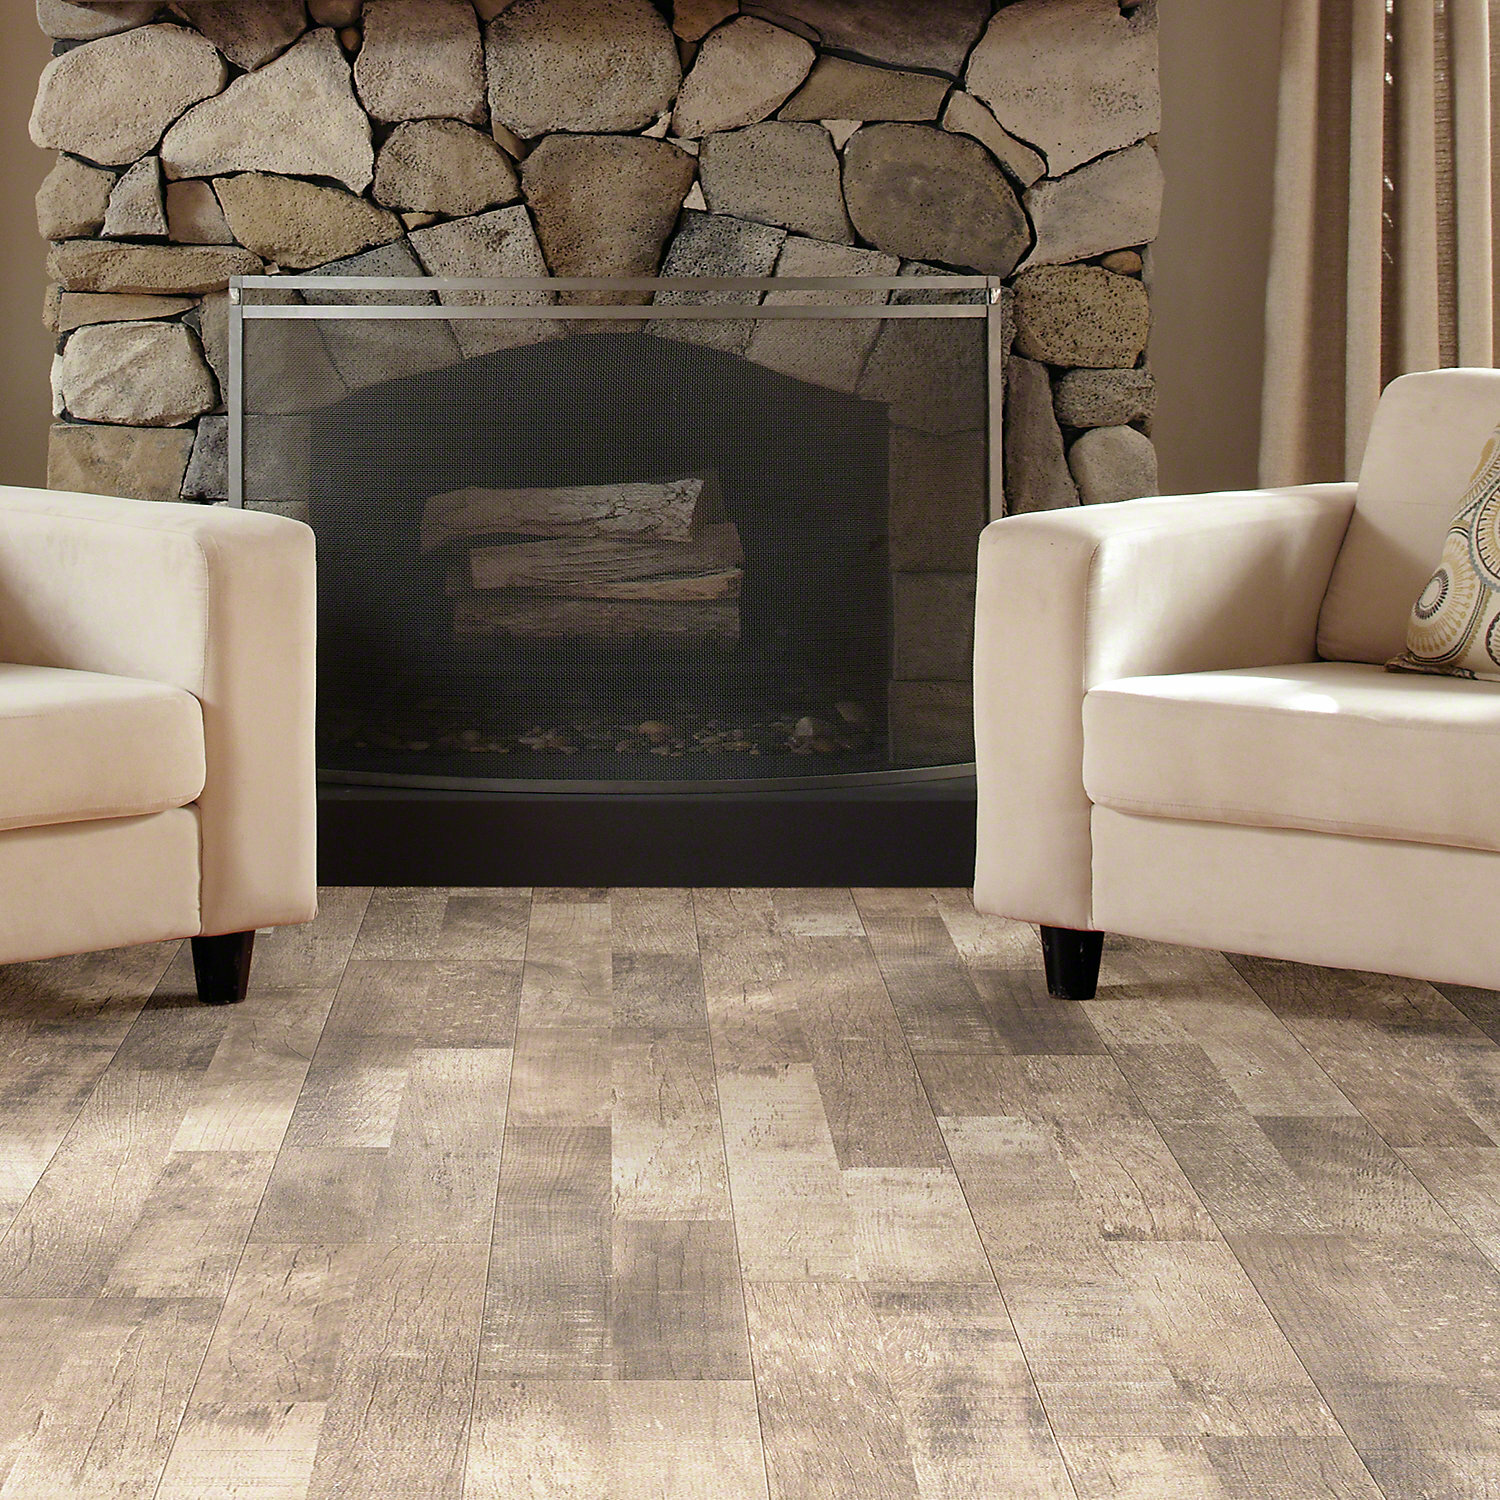 "Shaw Floors Reclaimed Belvoir 8"" x 48"" x 6mm Laminate Flooring in"